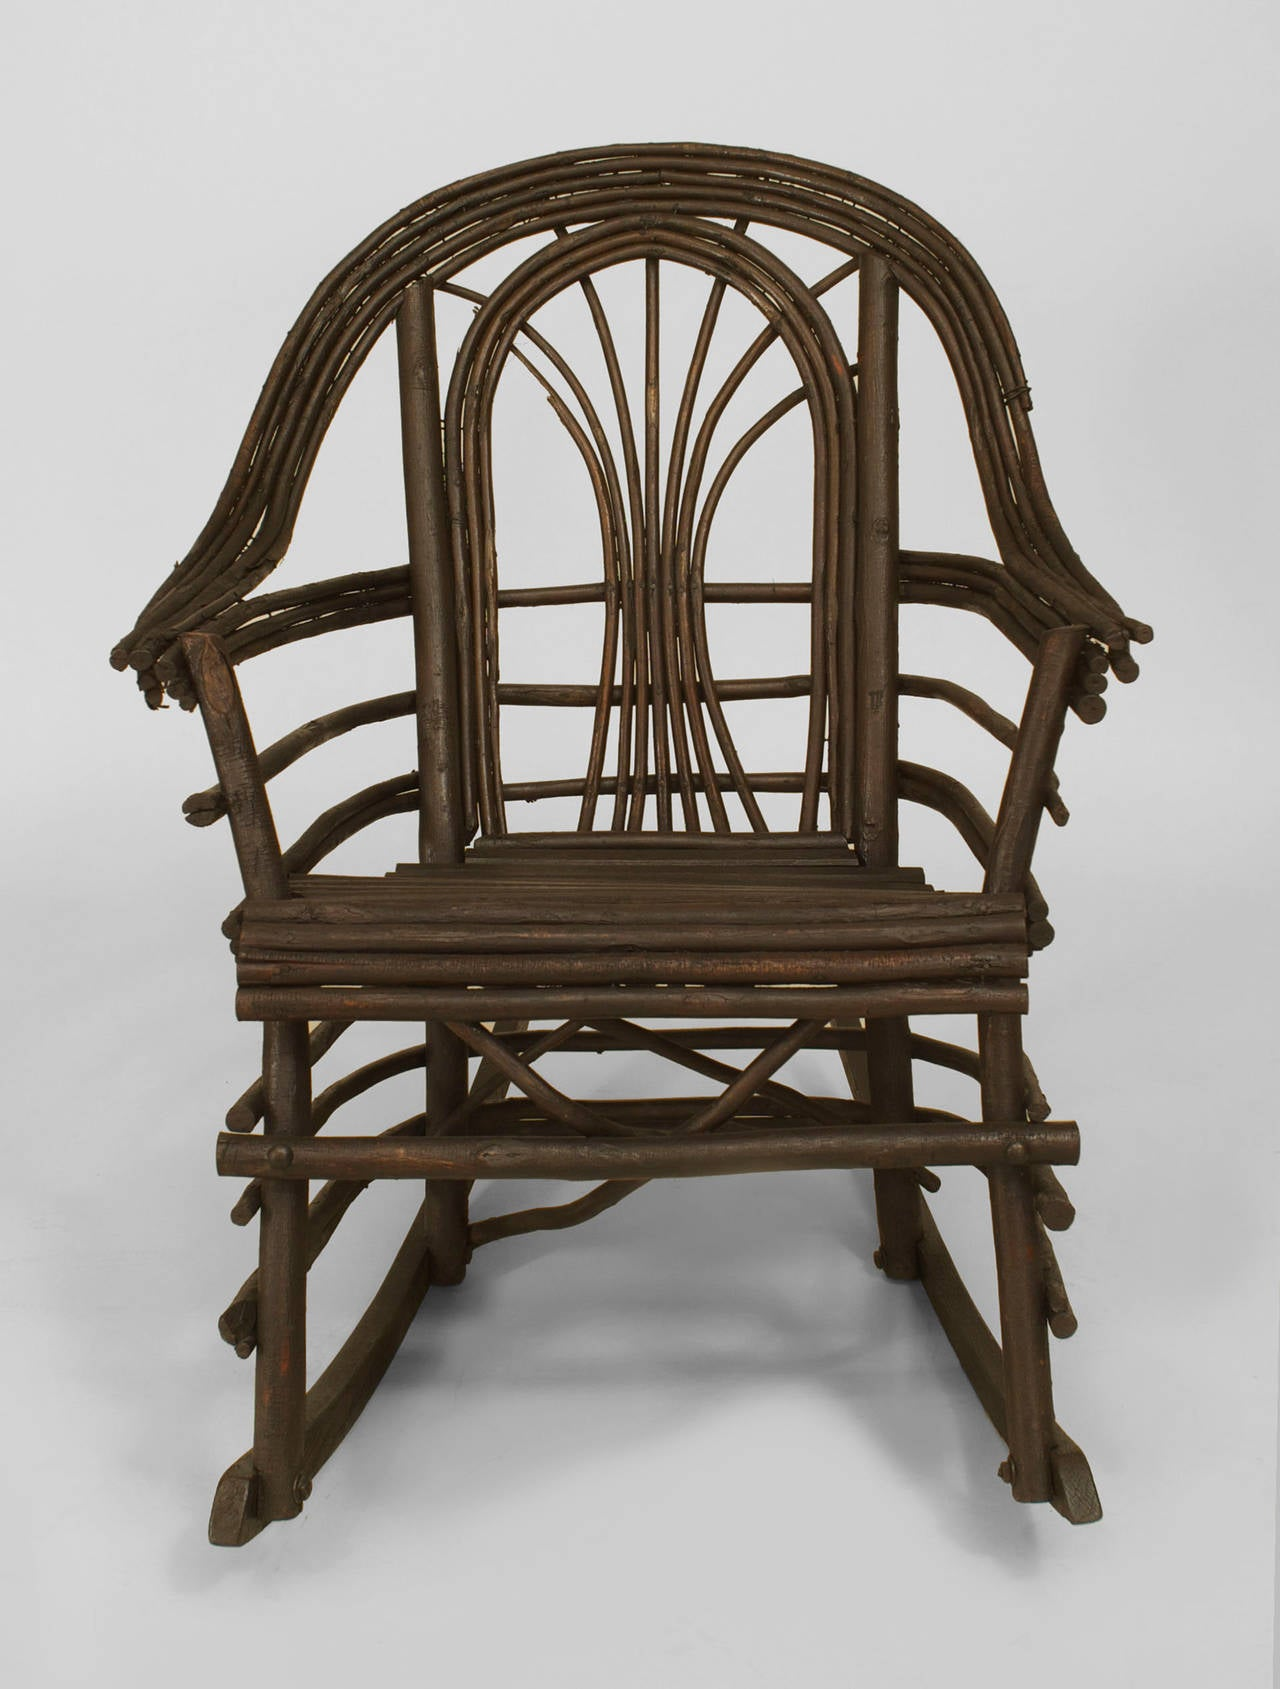 20th c American Adirondack Style Willow Twig Rocking Chair For